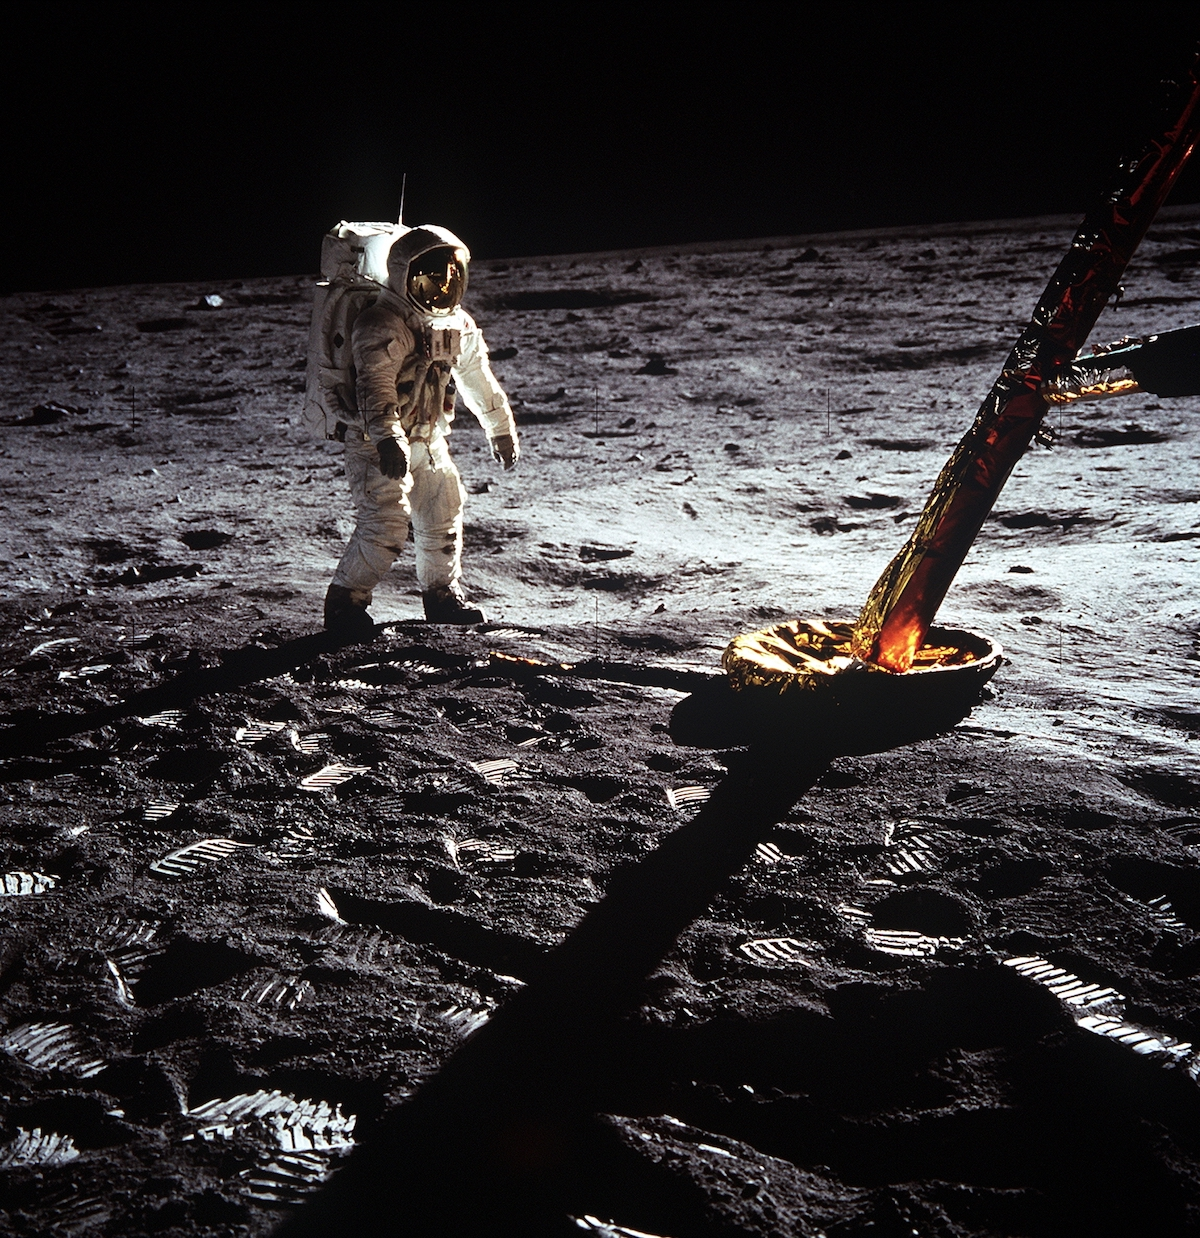 astronaut on the surface of the Moon, next to a lander leg of the lunar module